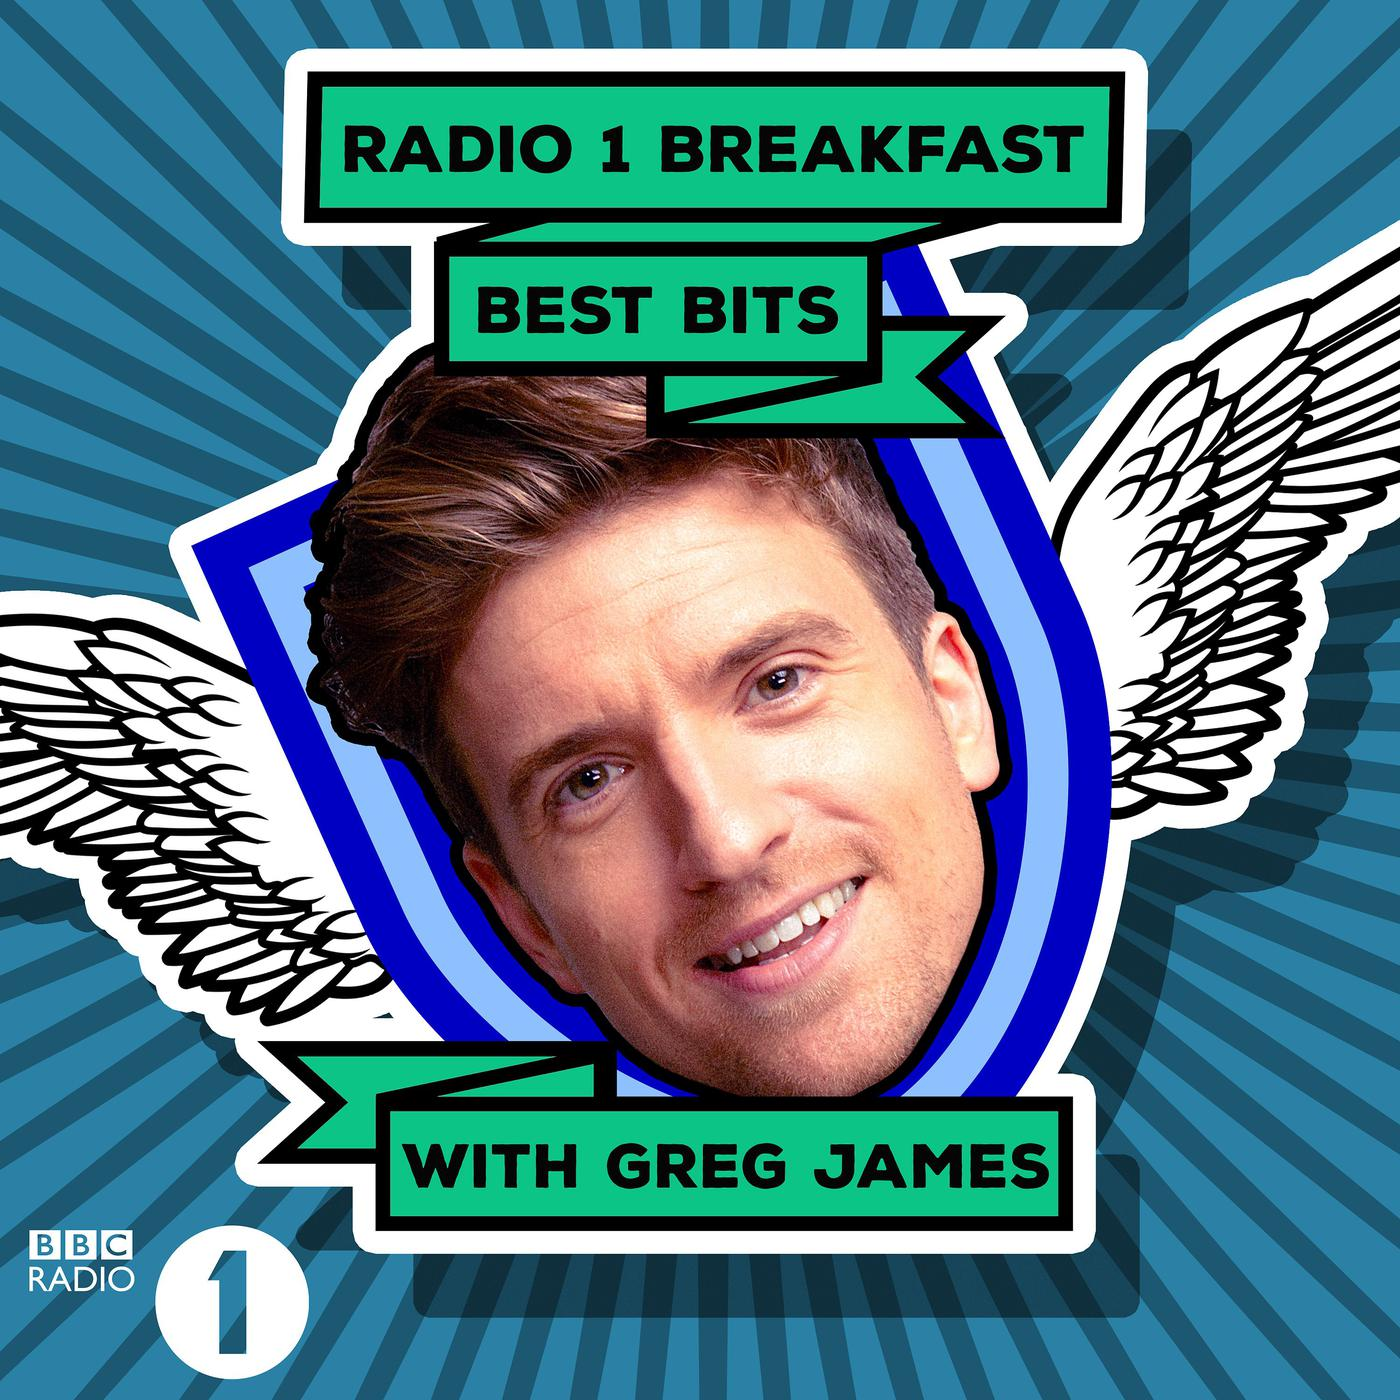 Radio 1 Breakfast Best Bits with Greg James (podcast) - BBC Radio 1